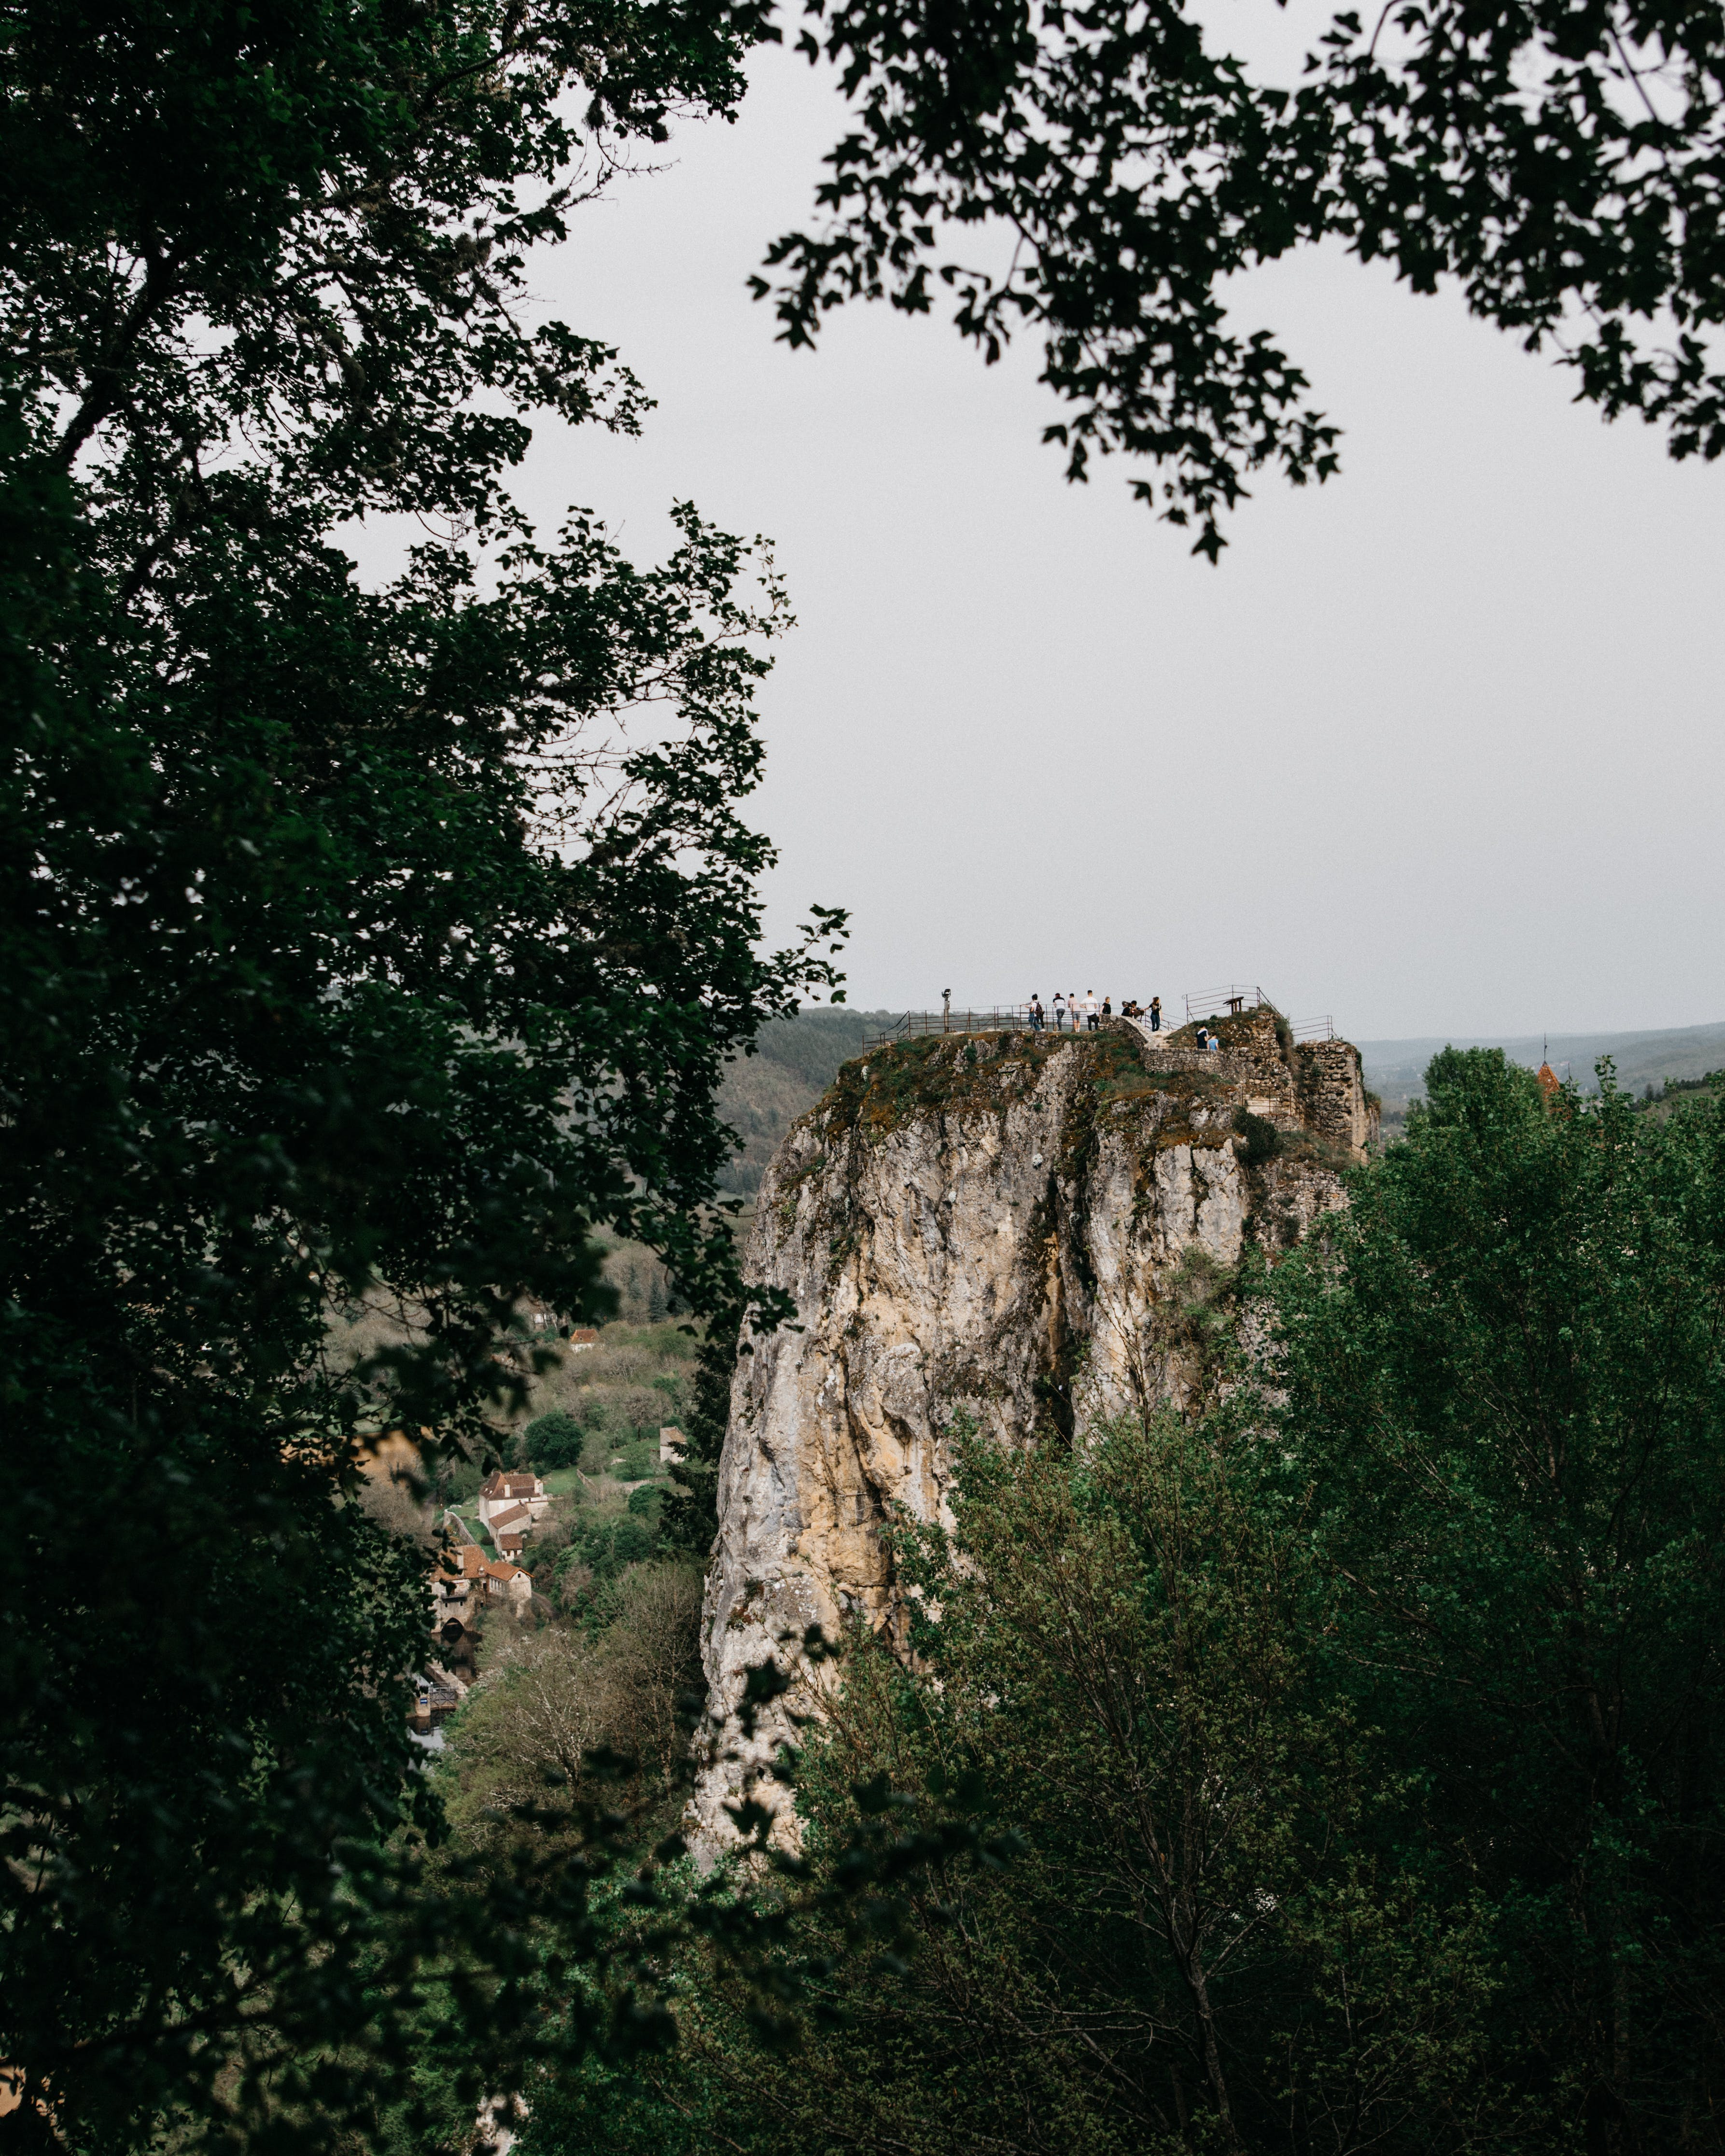 Rock Formation over the Trees